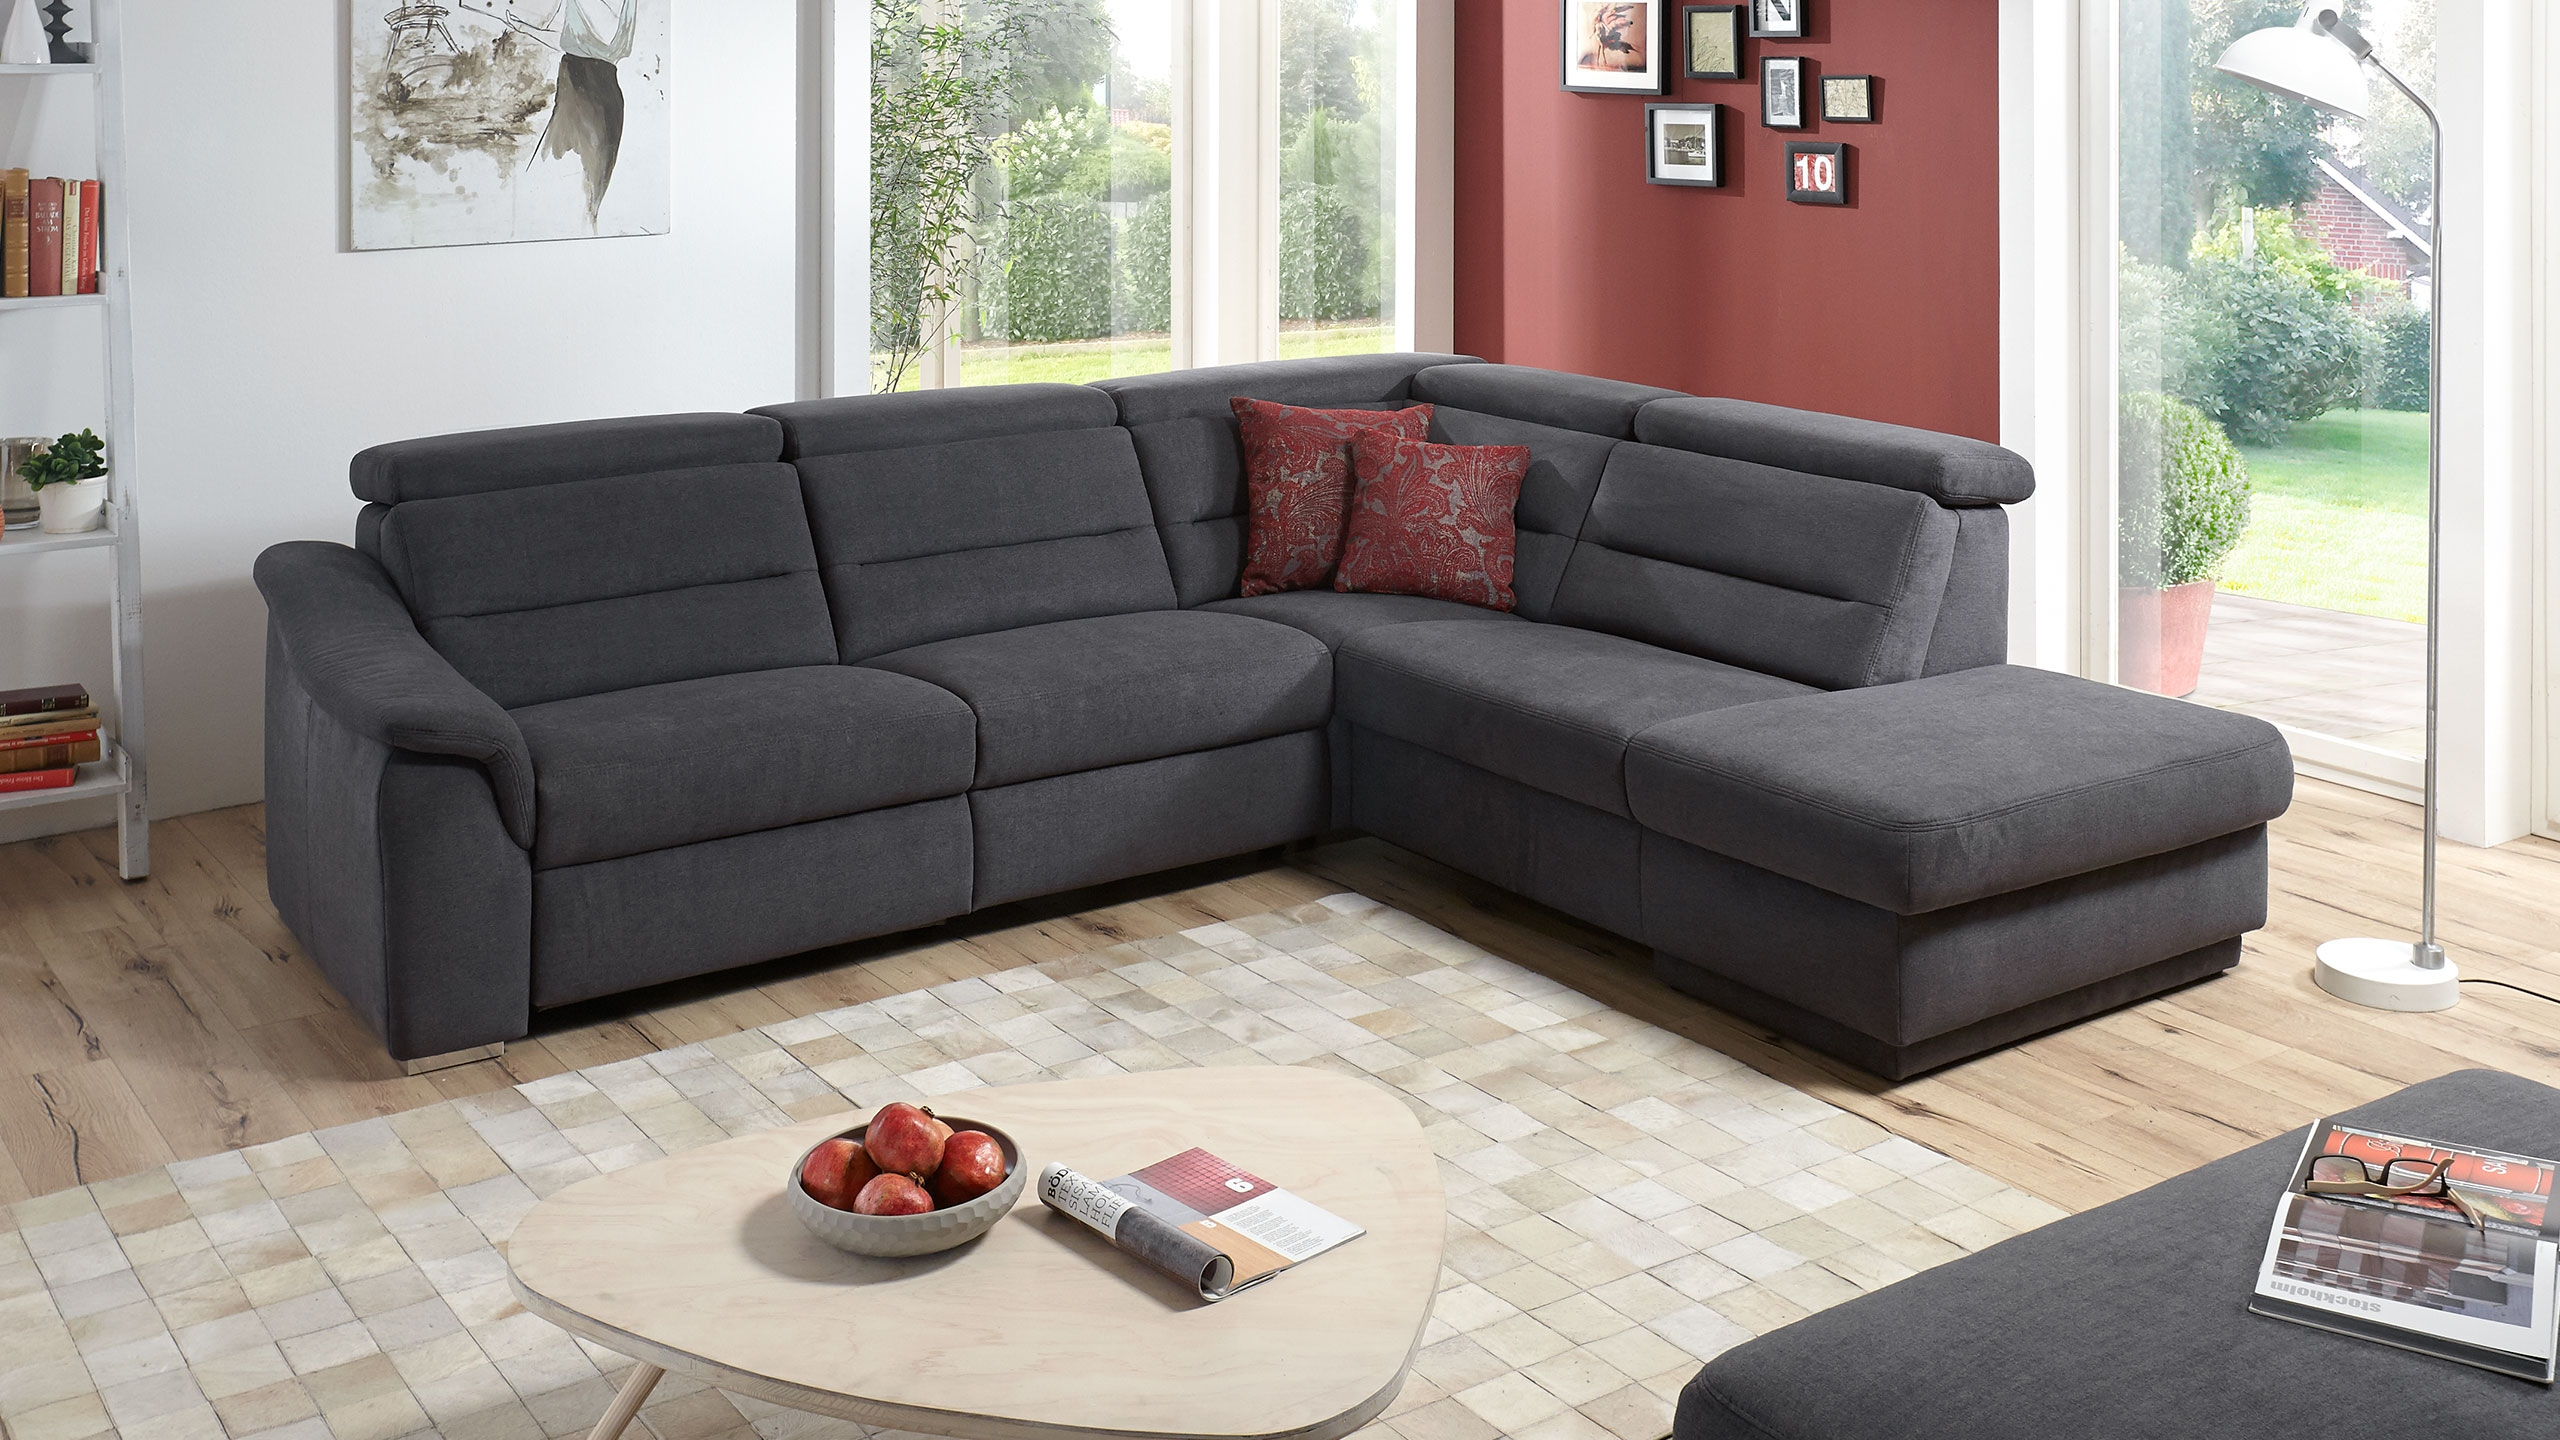 SC family/ select 1008 Ecksofa Grau